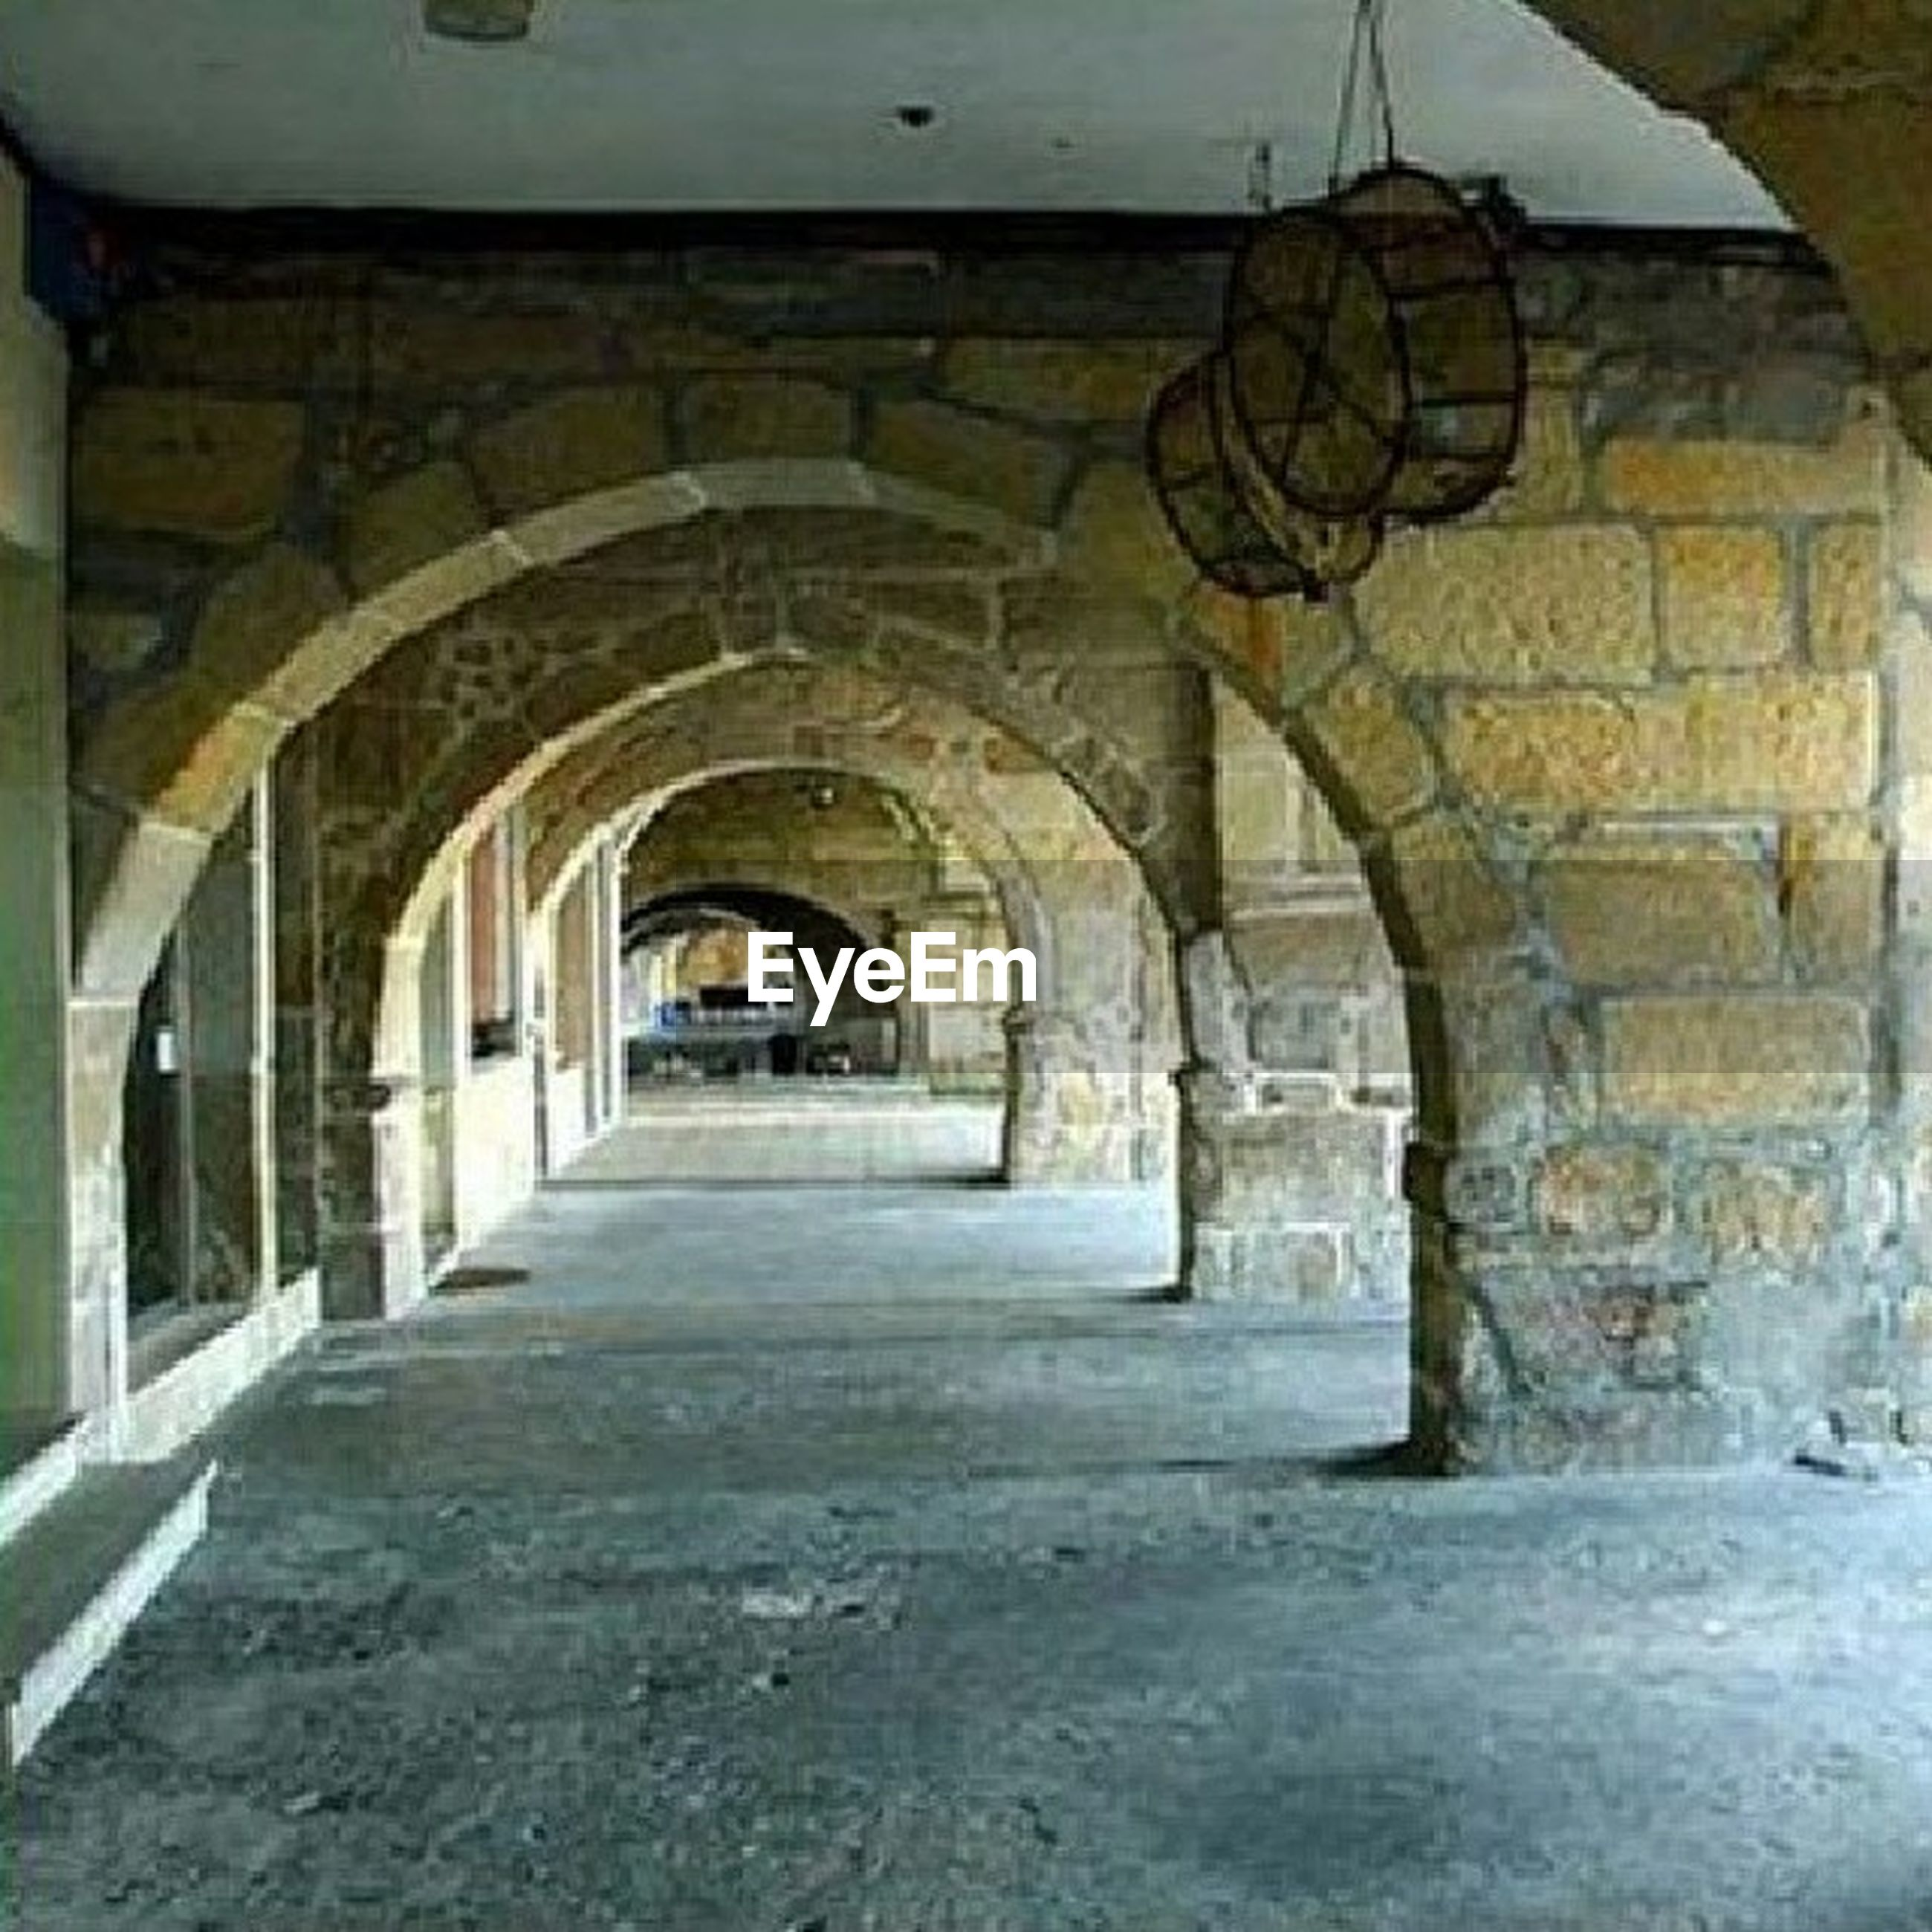 architecture, arch, built structure, indoors, the way forward, archway, corridor, diminishing perspective, old, building, empty, ceiling, history, building exterior, vanishing point, tunnel, architectural column, narrow, day, arched